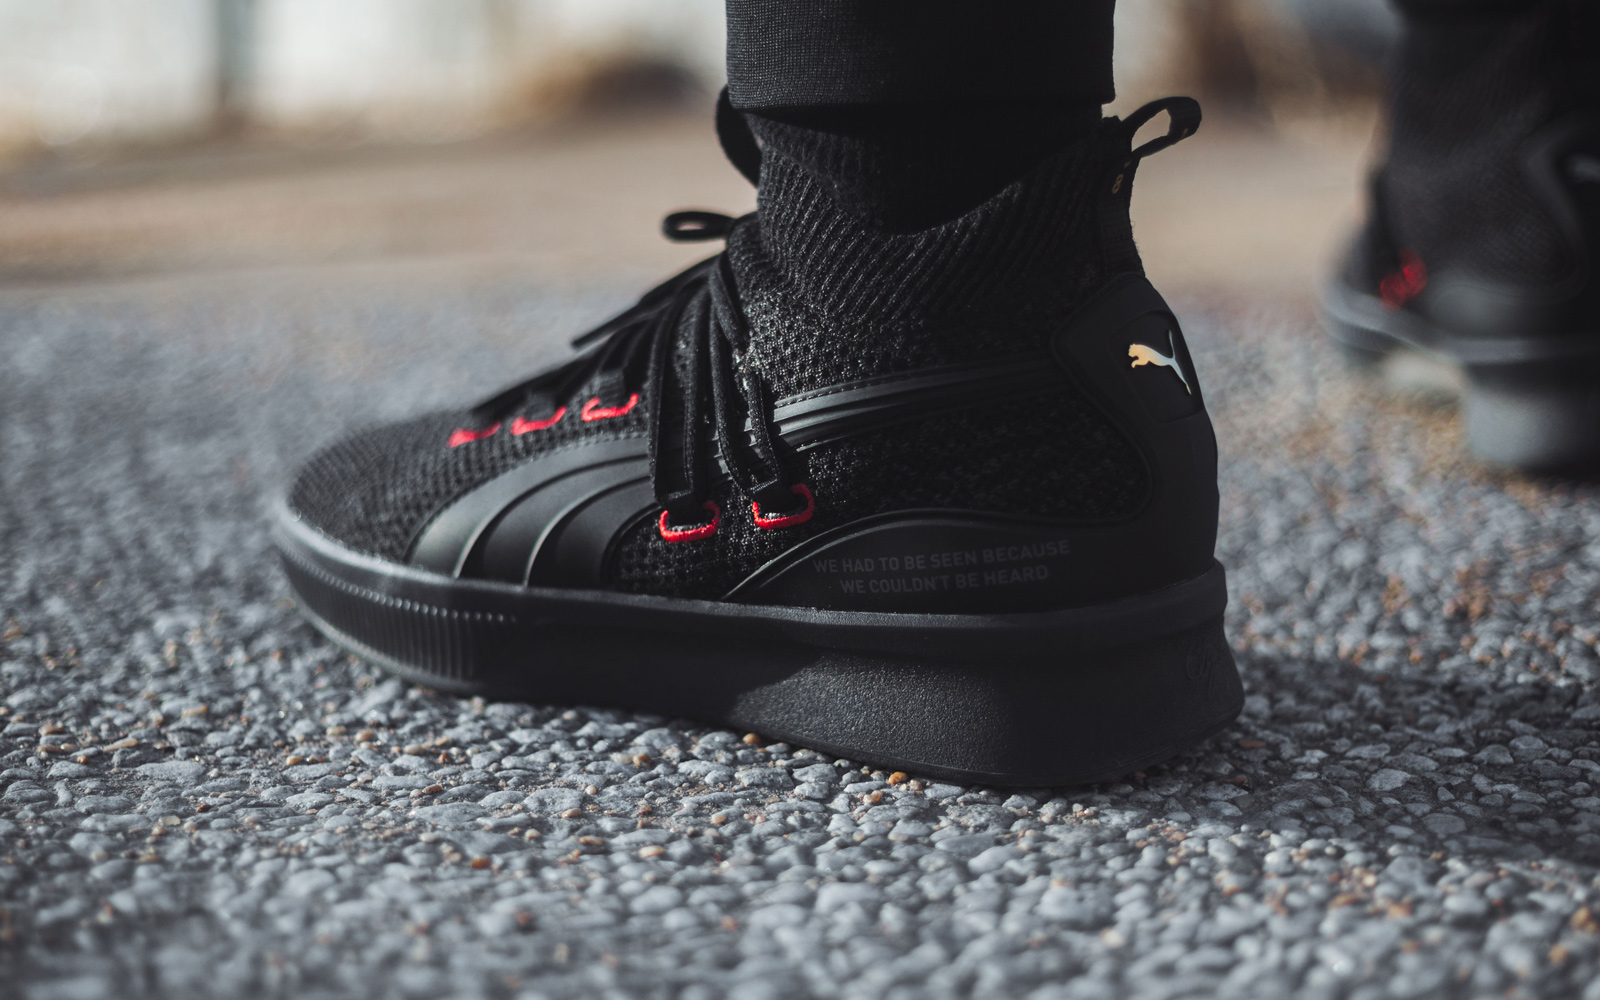 PUMA Clyde Court 'Reform' | The Lifestyle